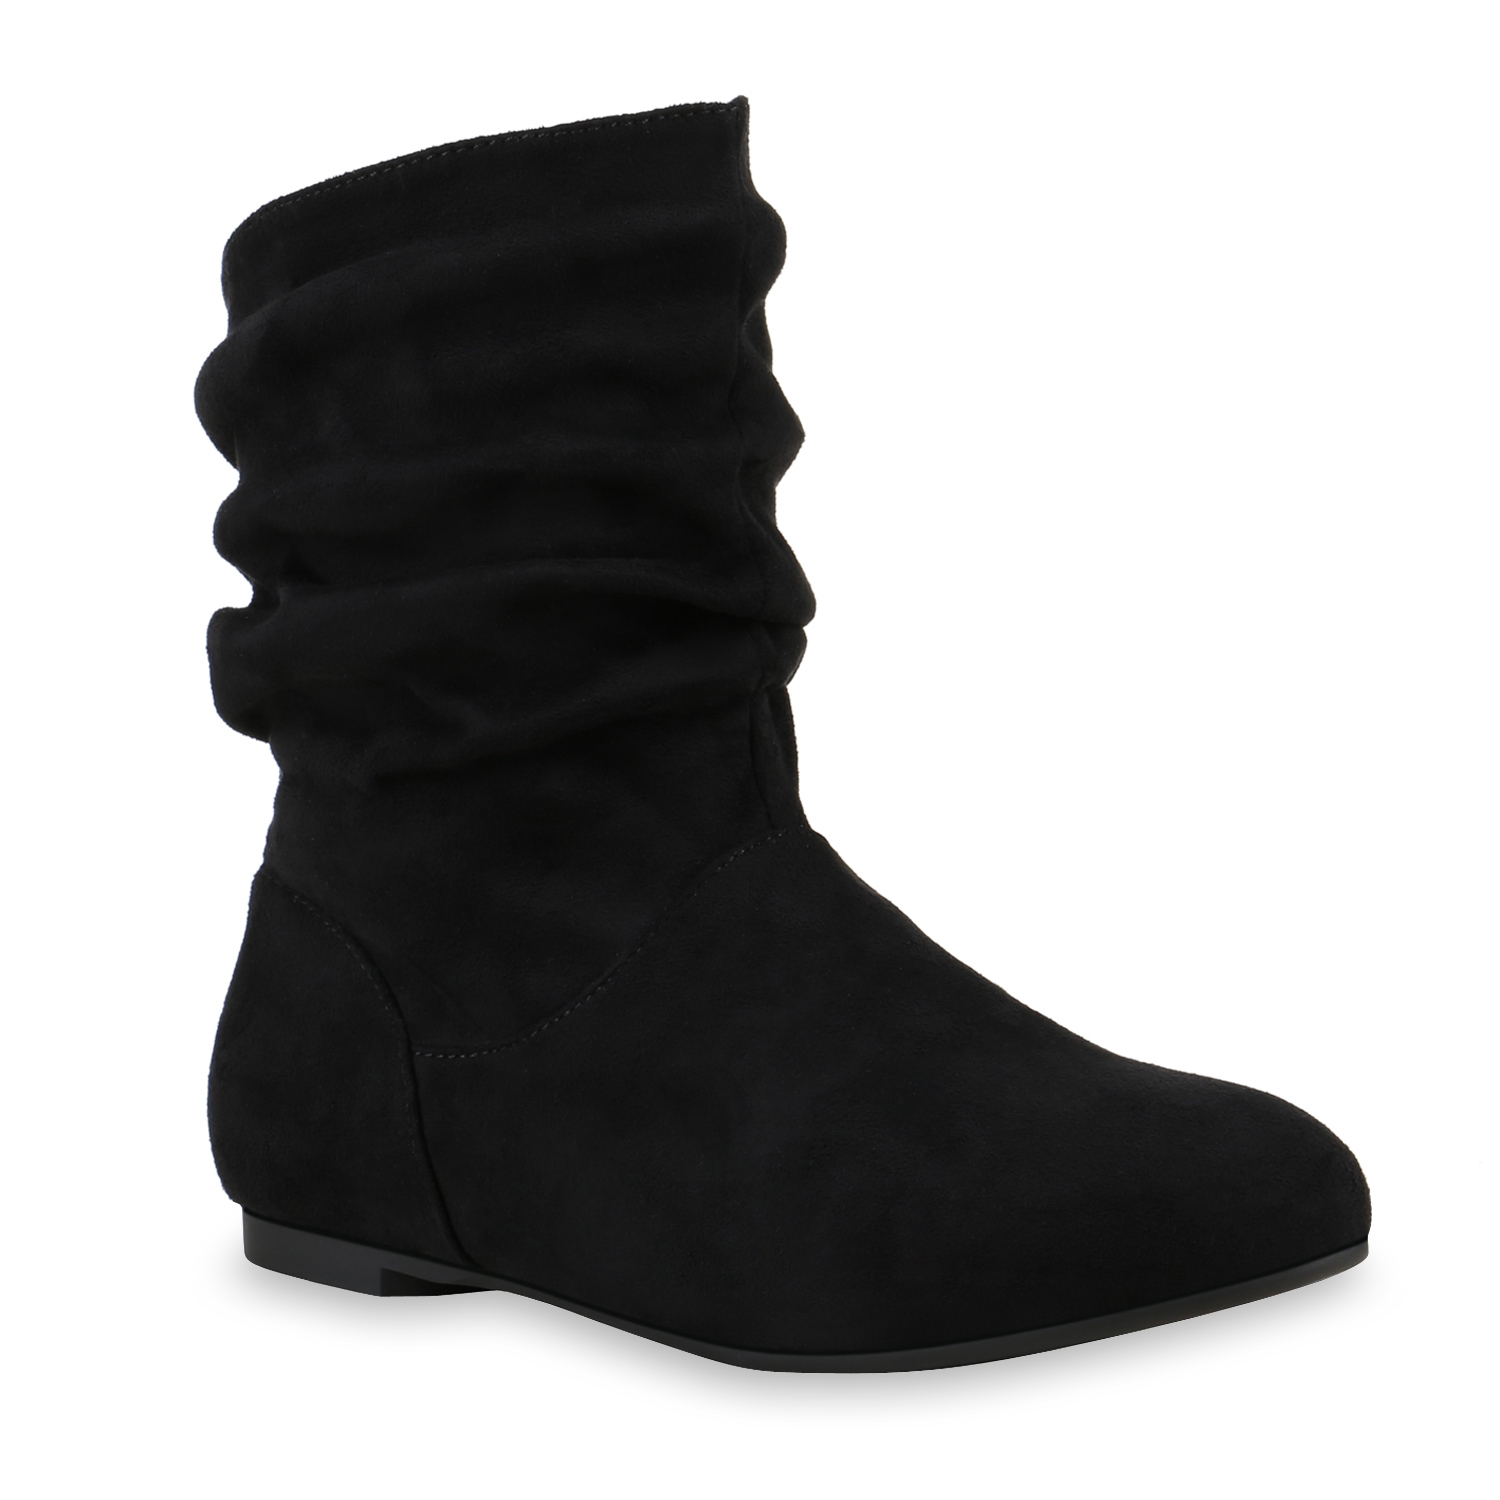 Damen Stiefeletten Schlupfstiefeletten - Schwarz